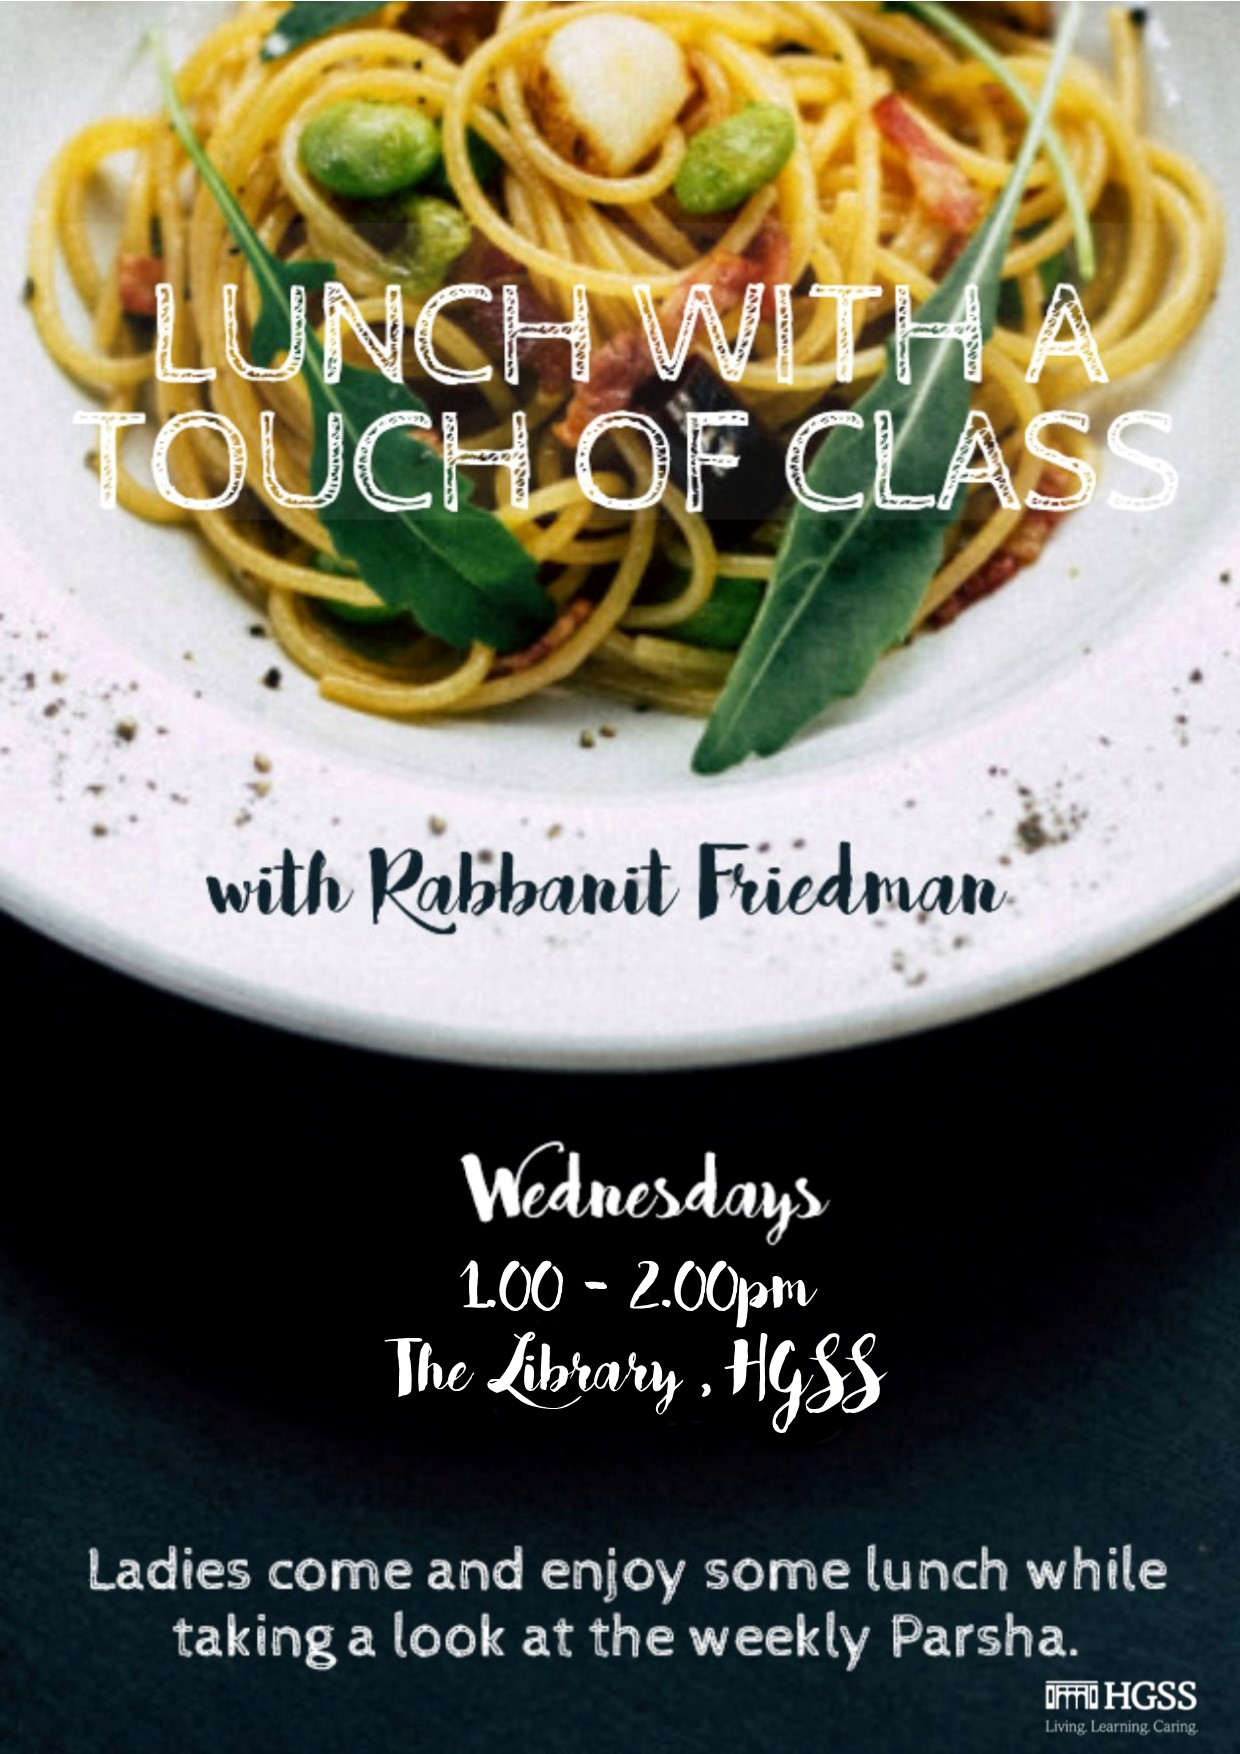 Lunch with a Touch of Class - Postponed @ The Library, HGSS